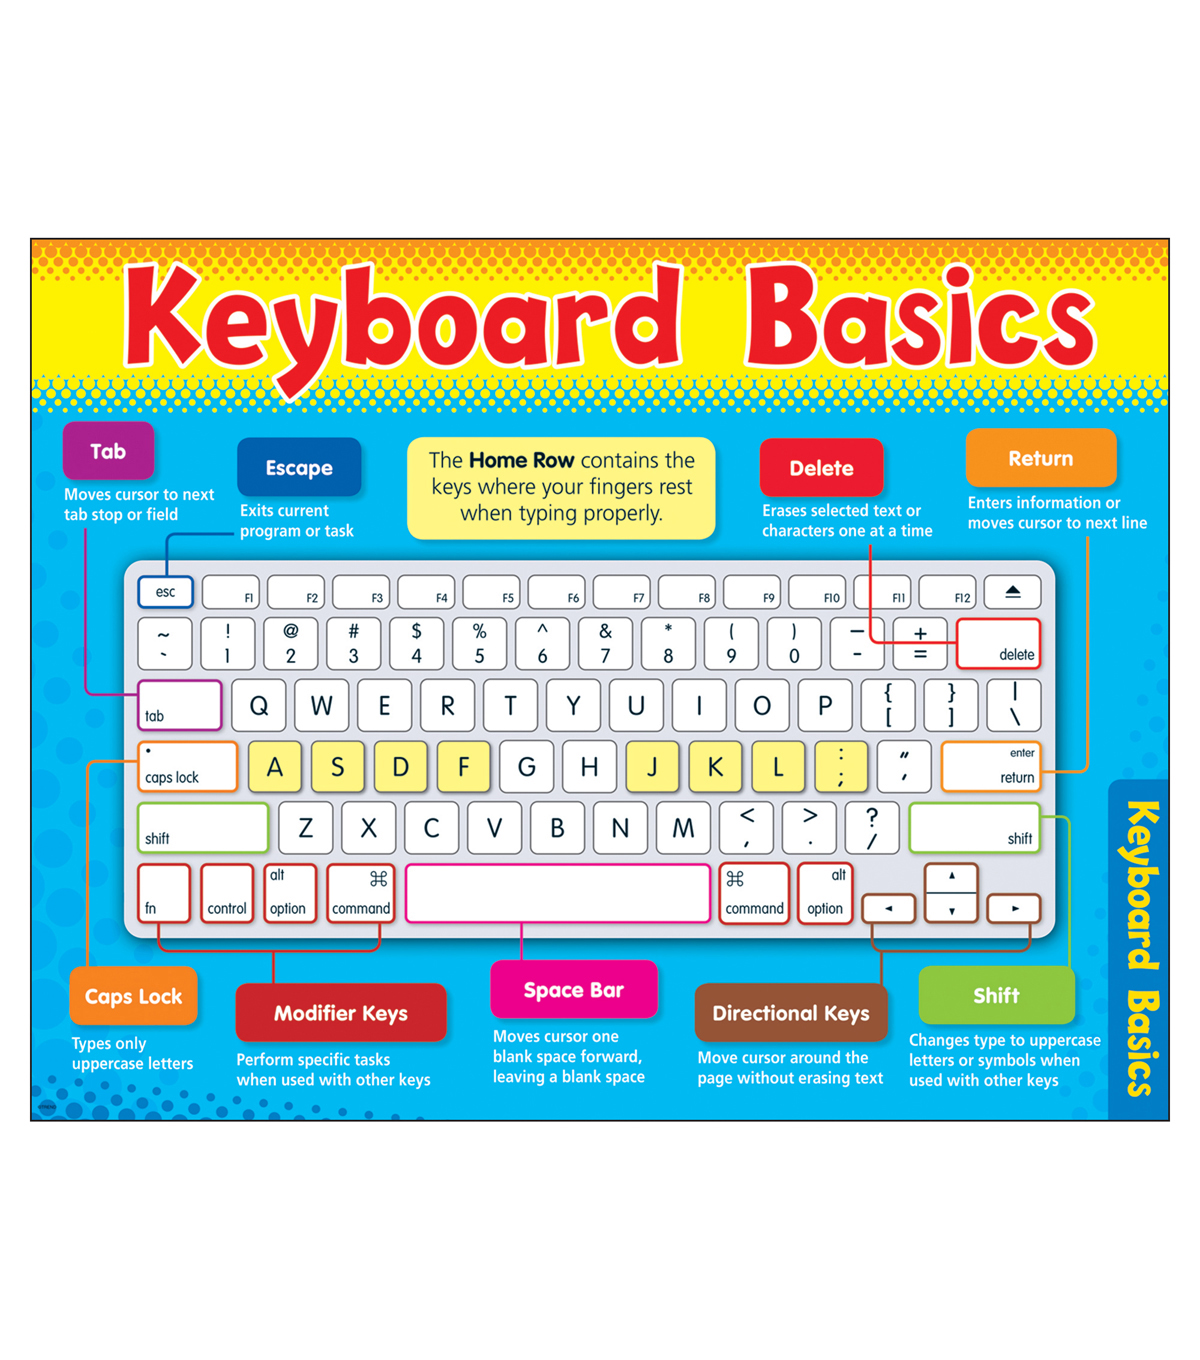 Computer Keyboard Basics Learning Chart 17\u0022x22\u0022 6pk